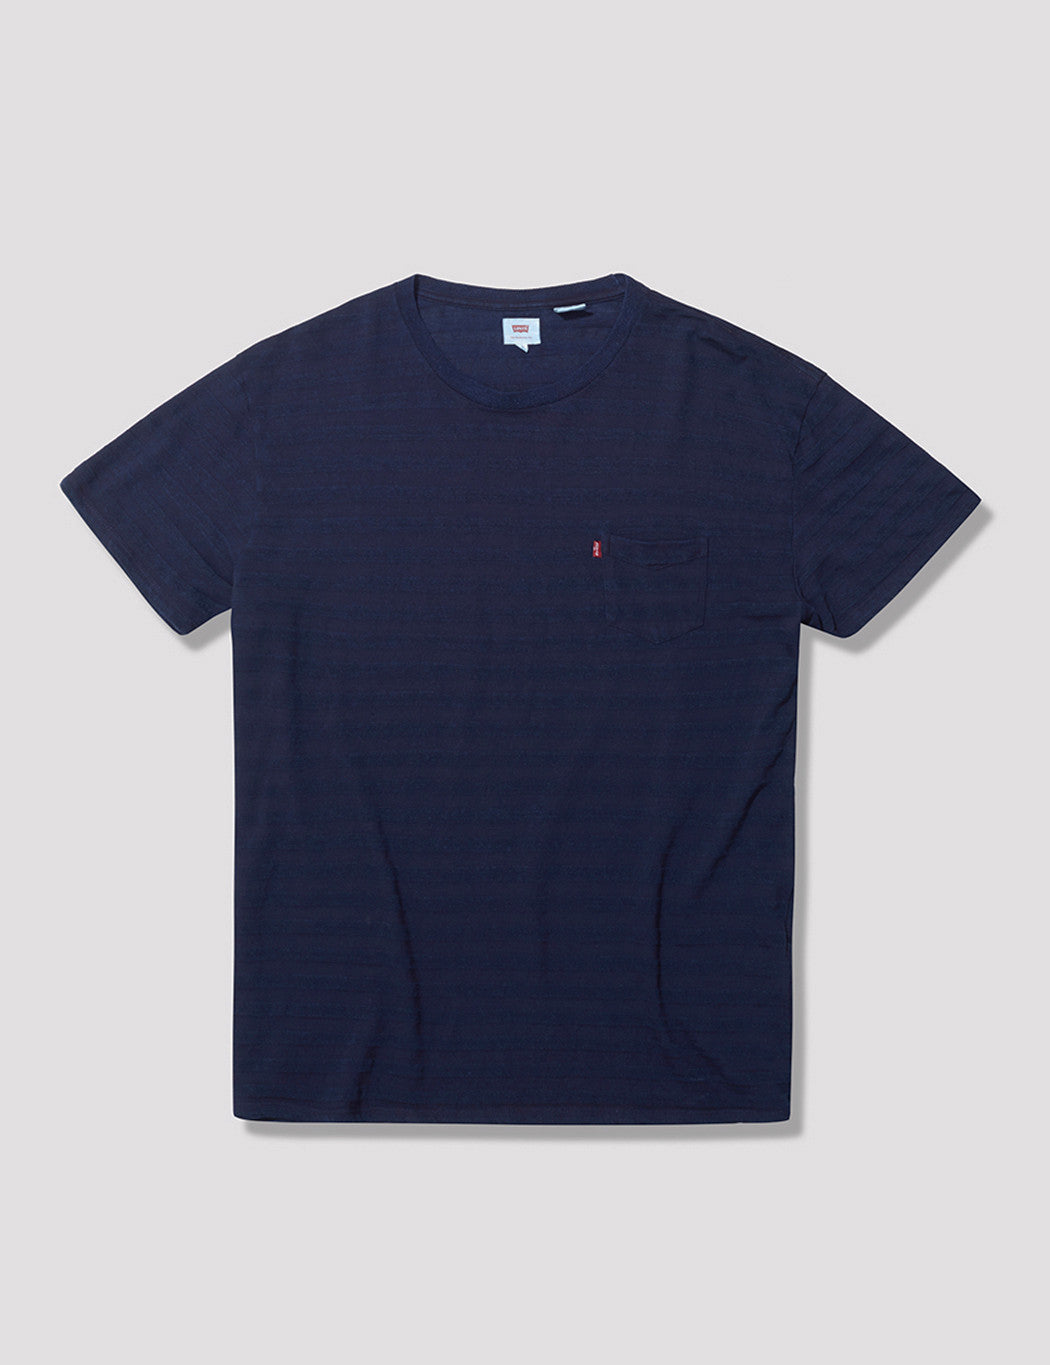 Levis Sunrise Striped Pocket T-Shirt - Indigo